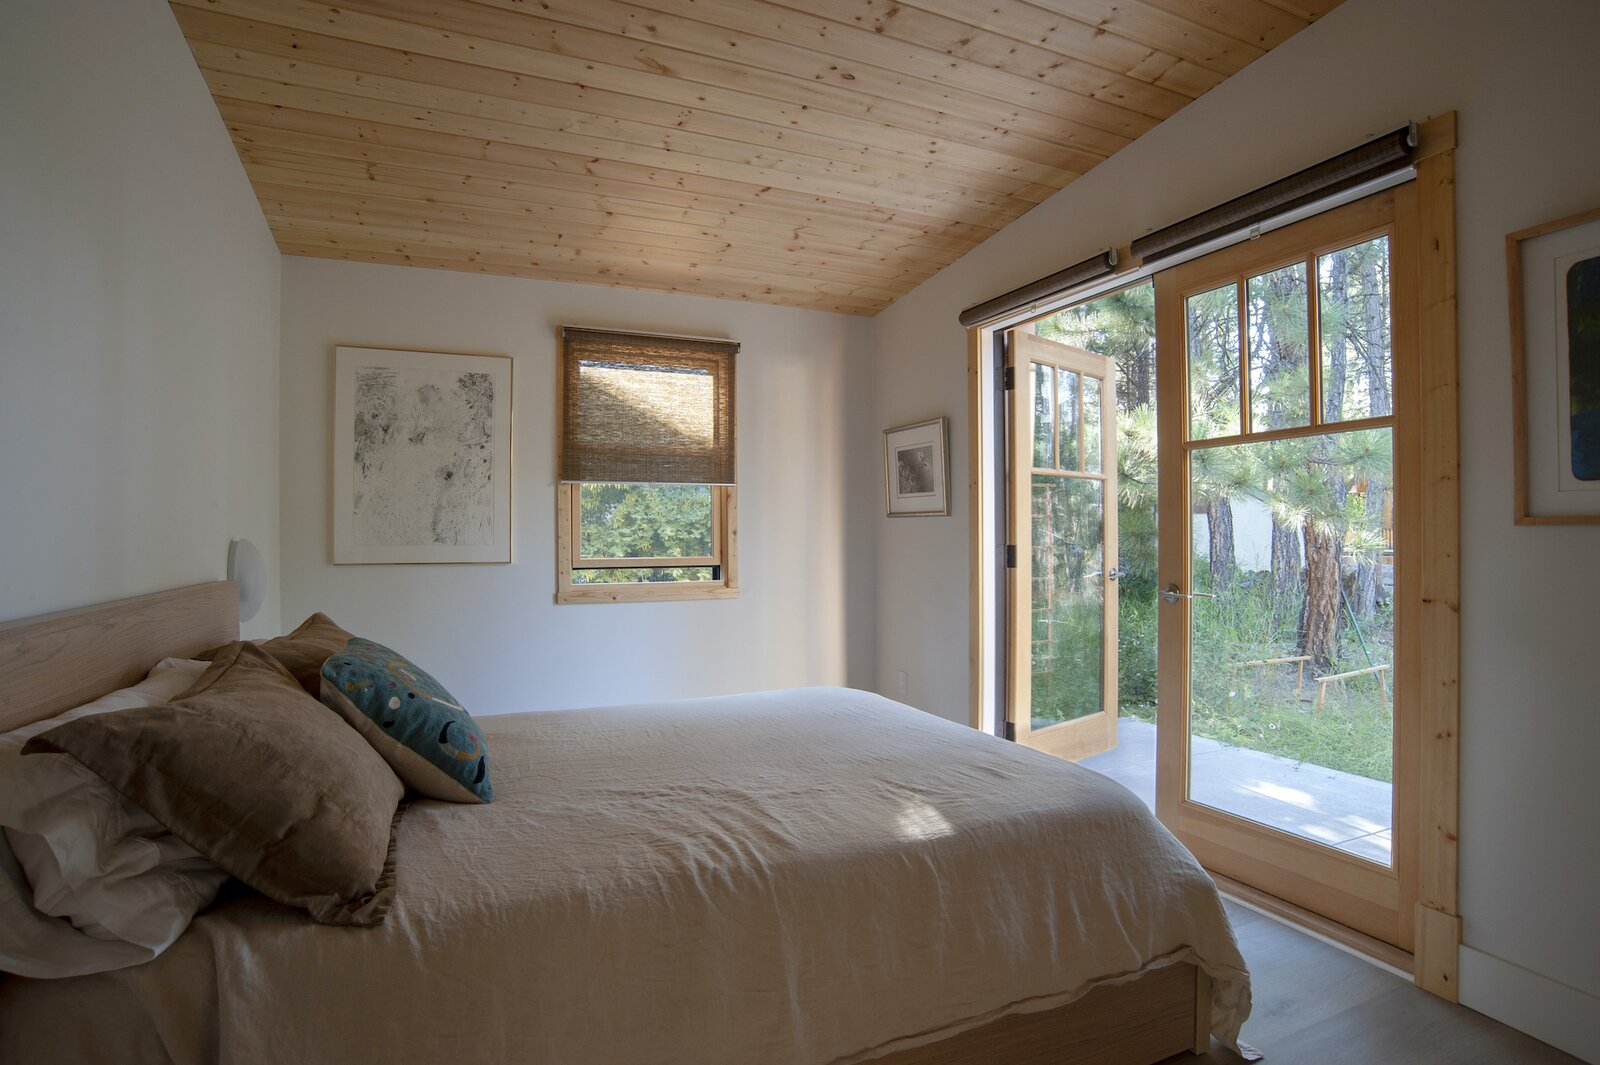 Bedroom of Treegazer.